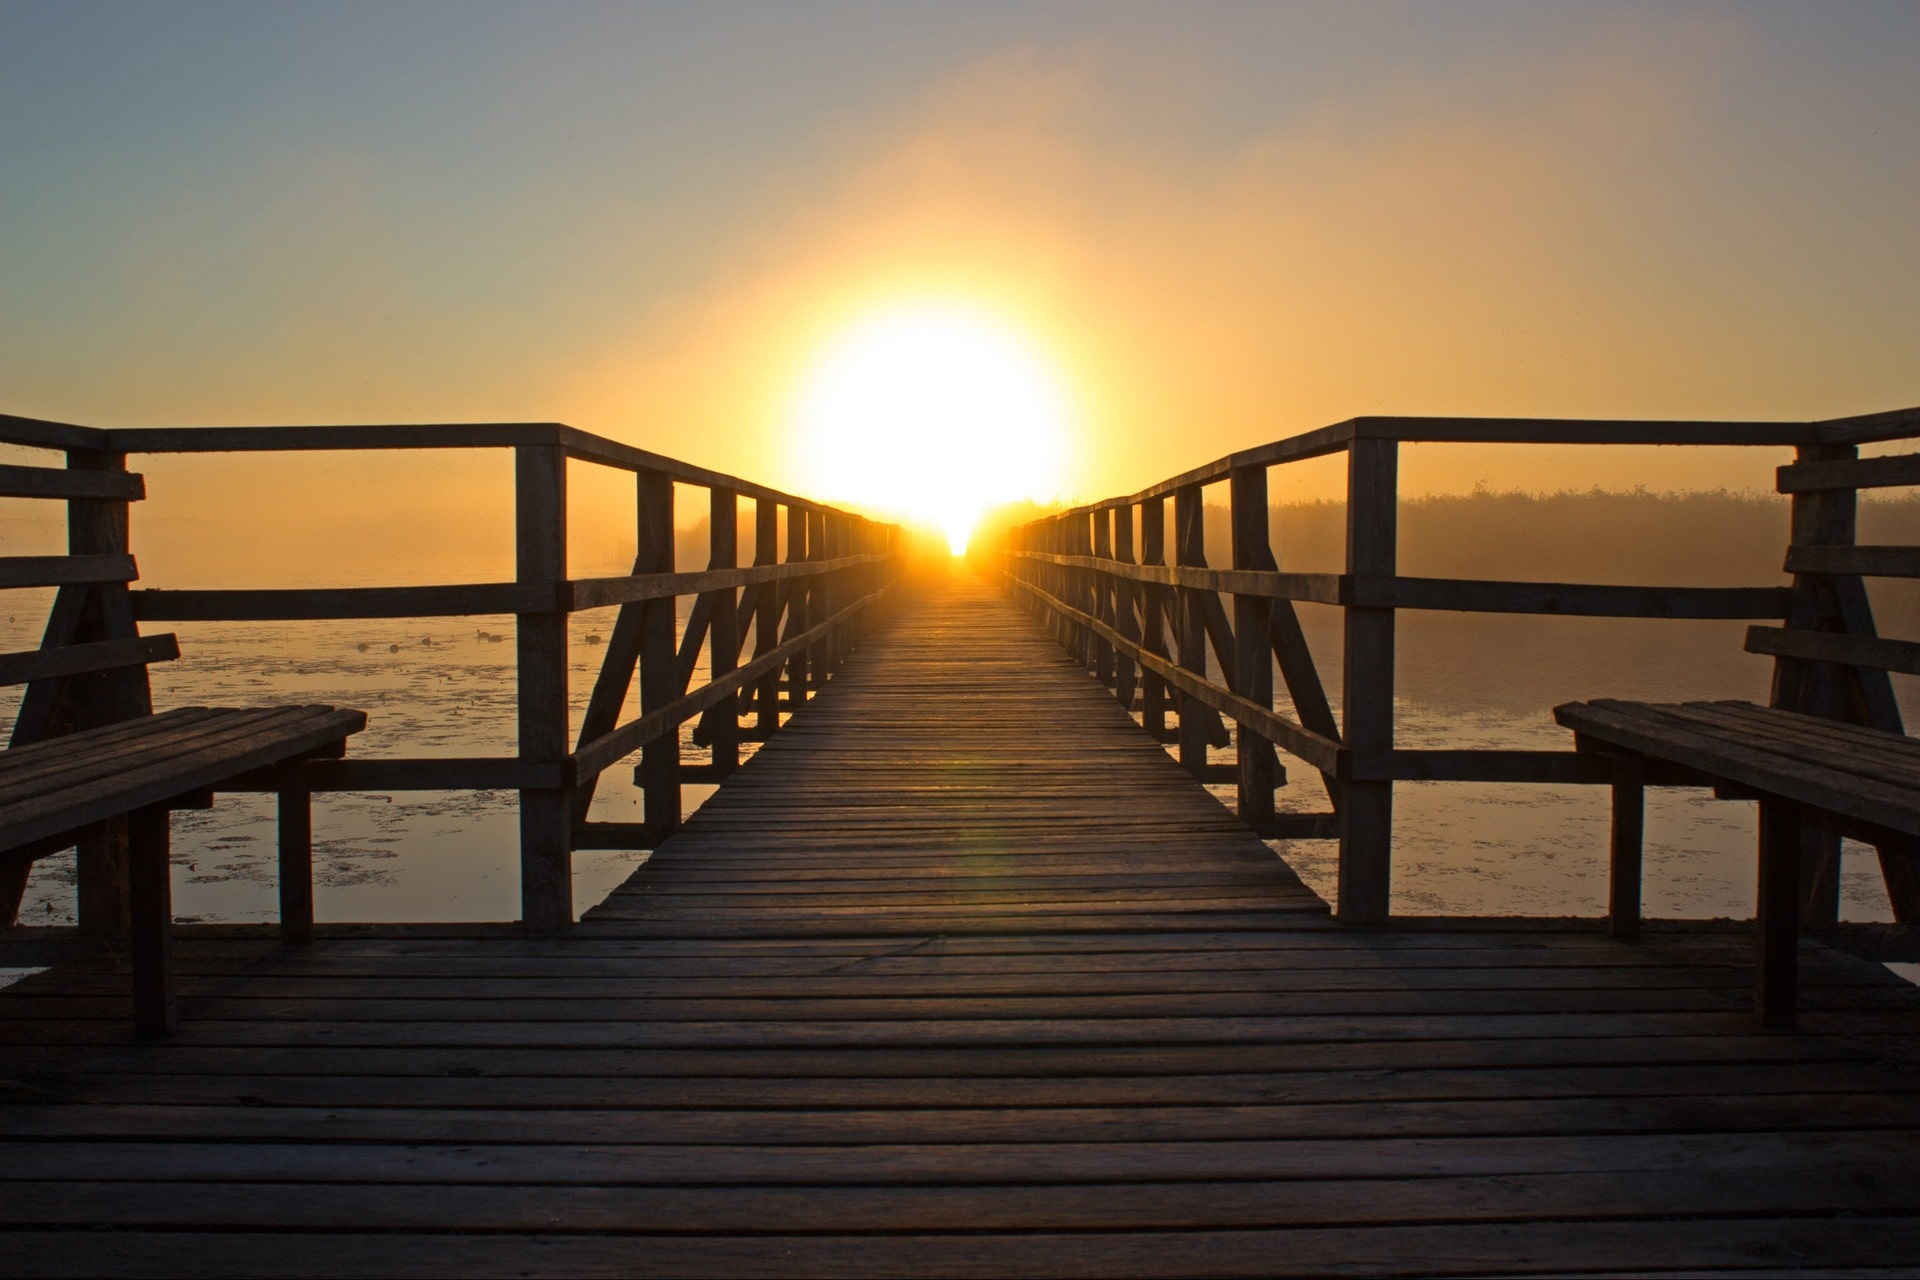 sunrise at the end of a dock